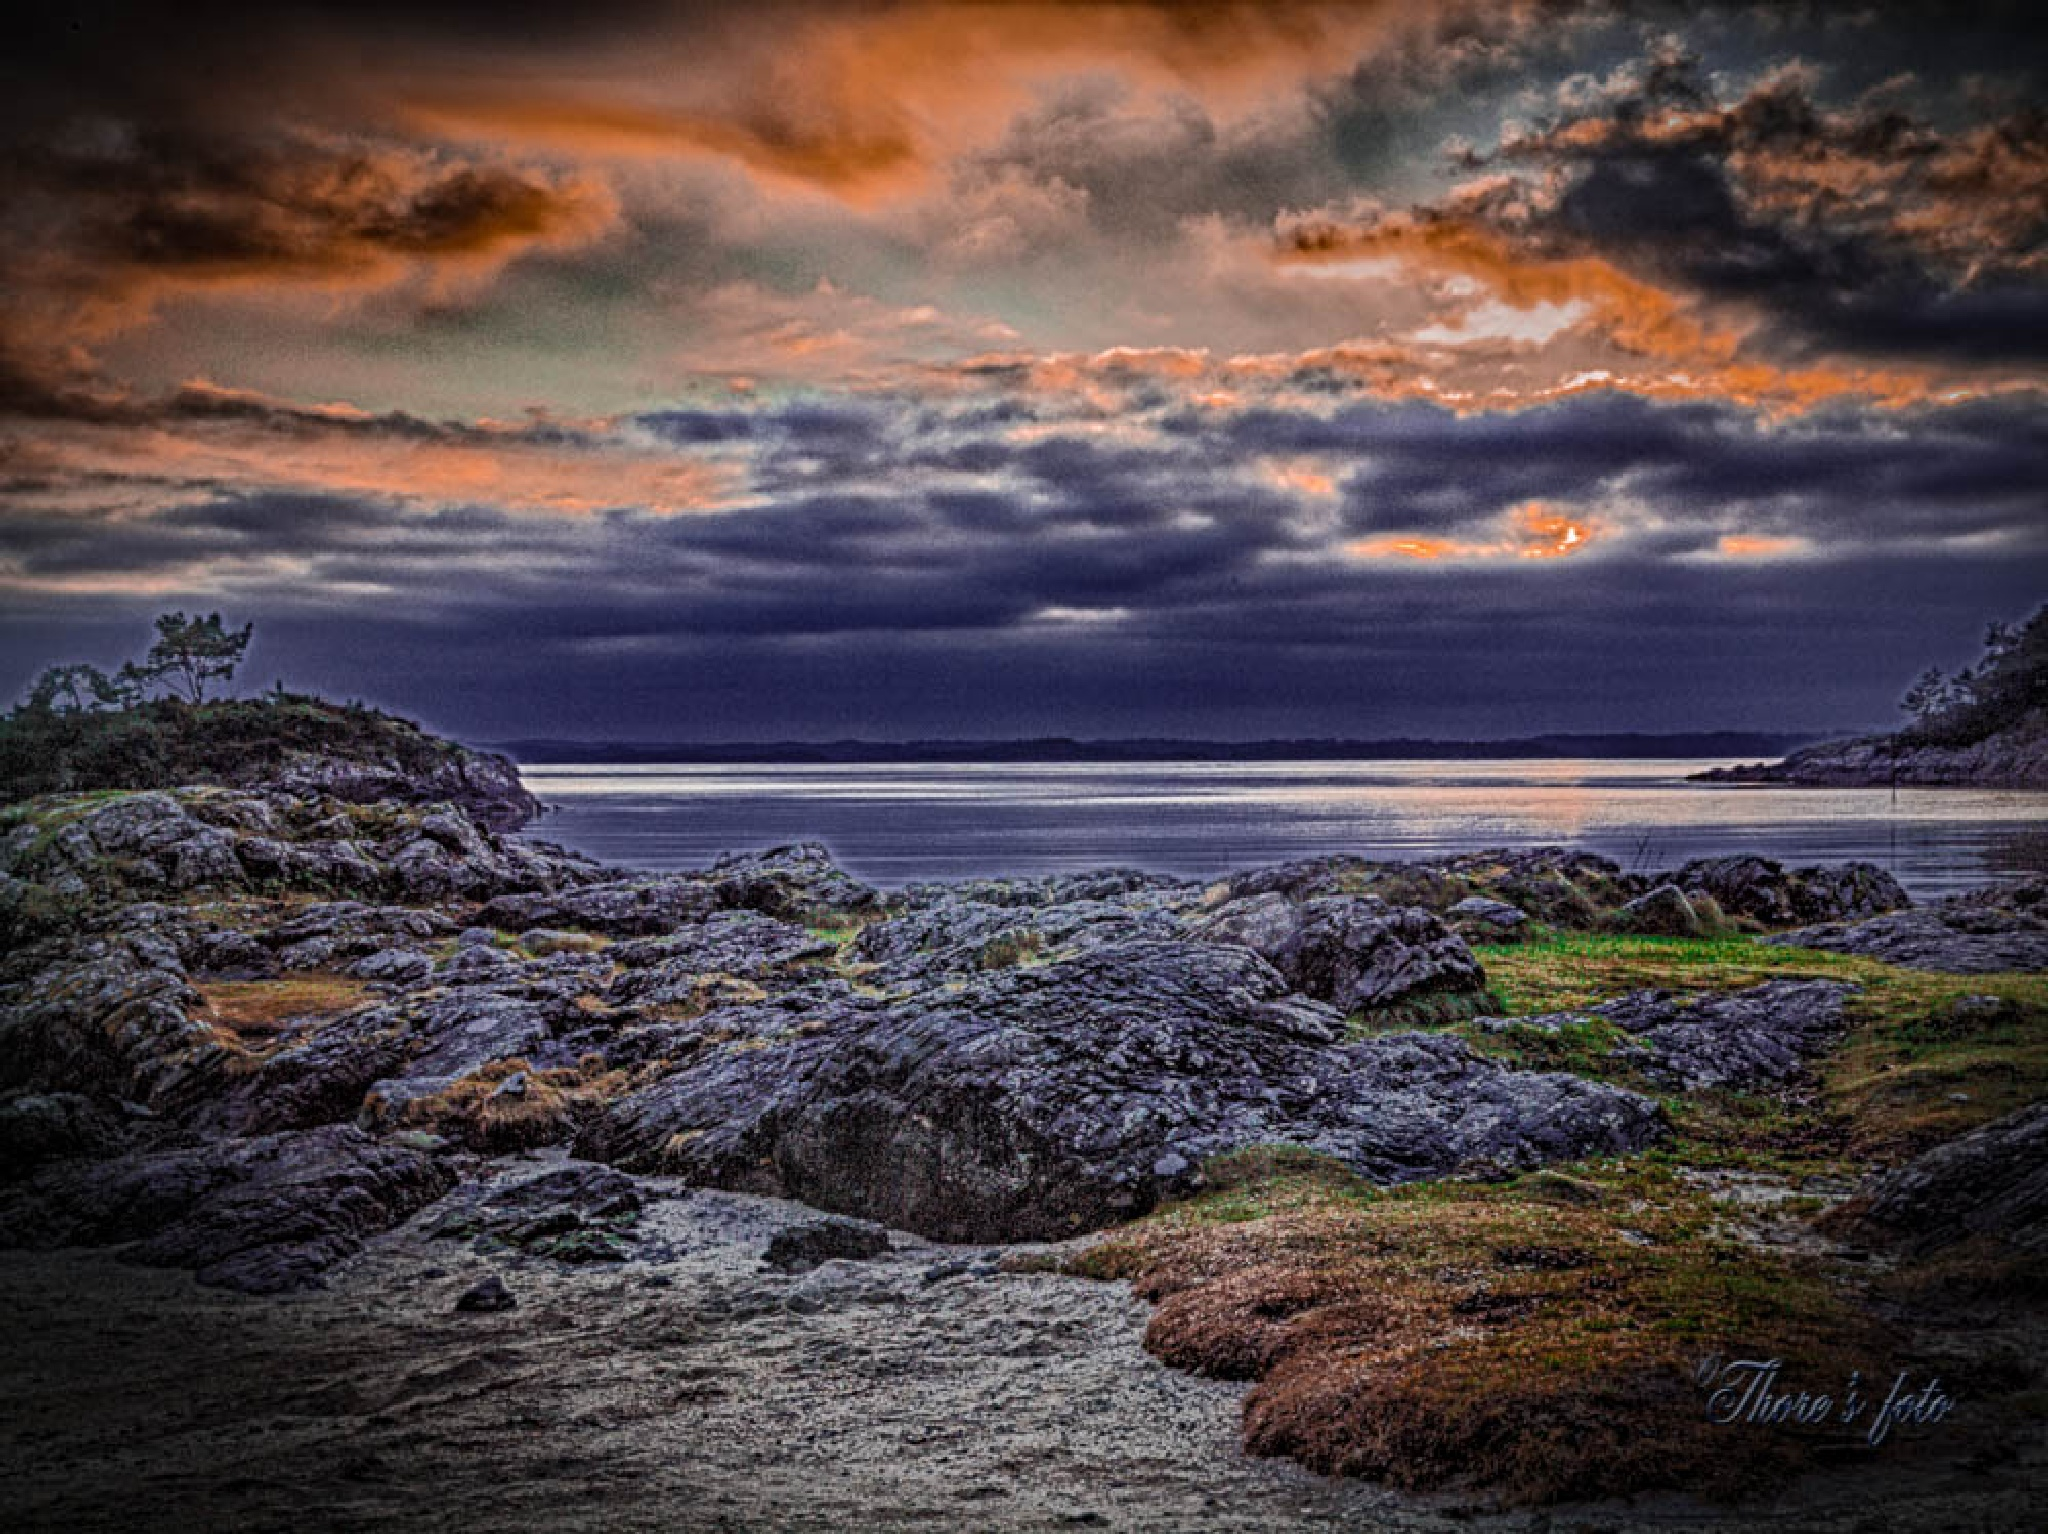 rocks and sunset by Thore's photo